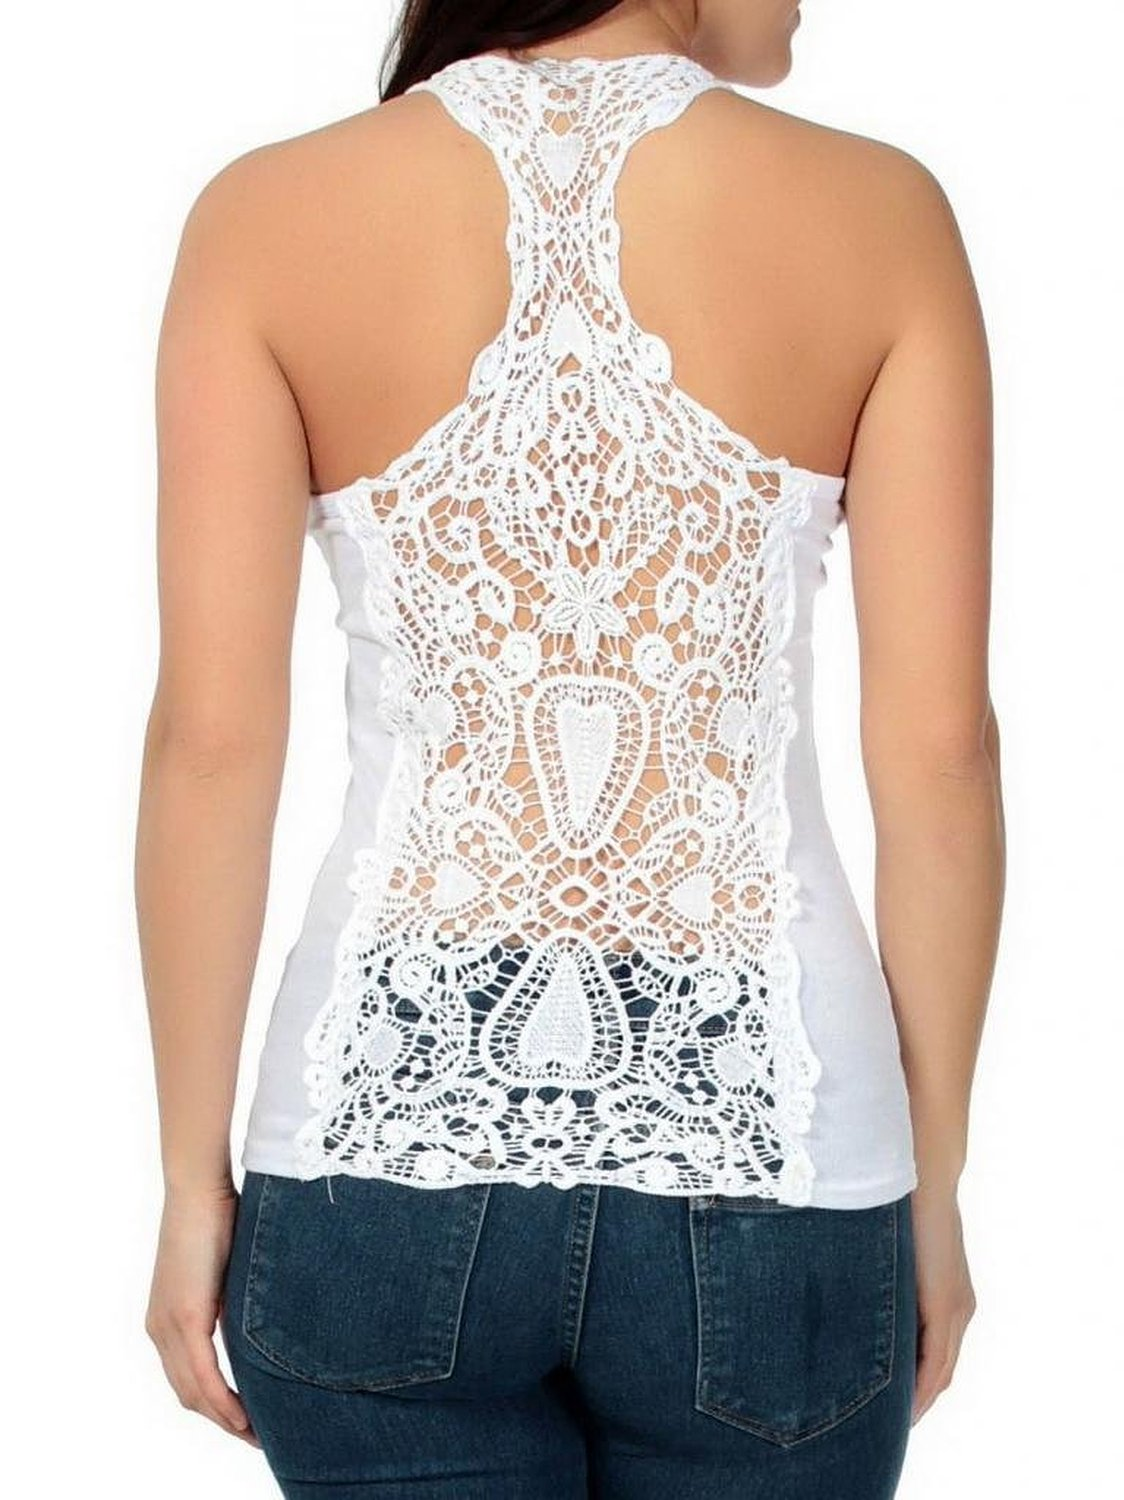 Bigood Women Lace Knit Racerback Tank Top w/ See Through Crochet Back Hollow-out White at Amazon Women's Clothing store: